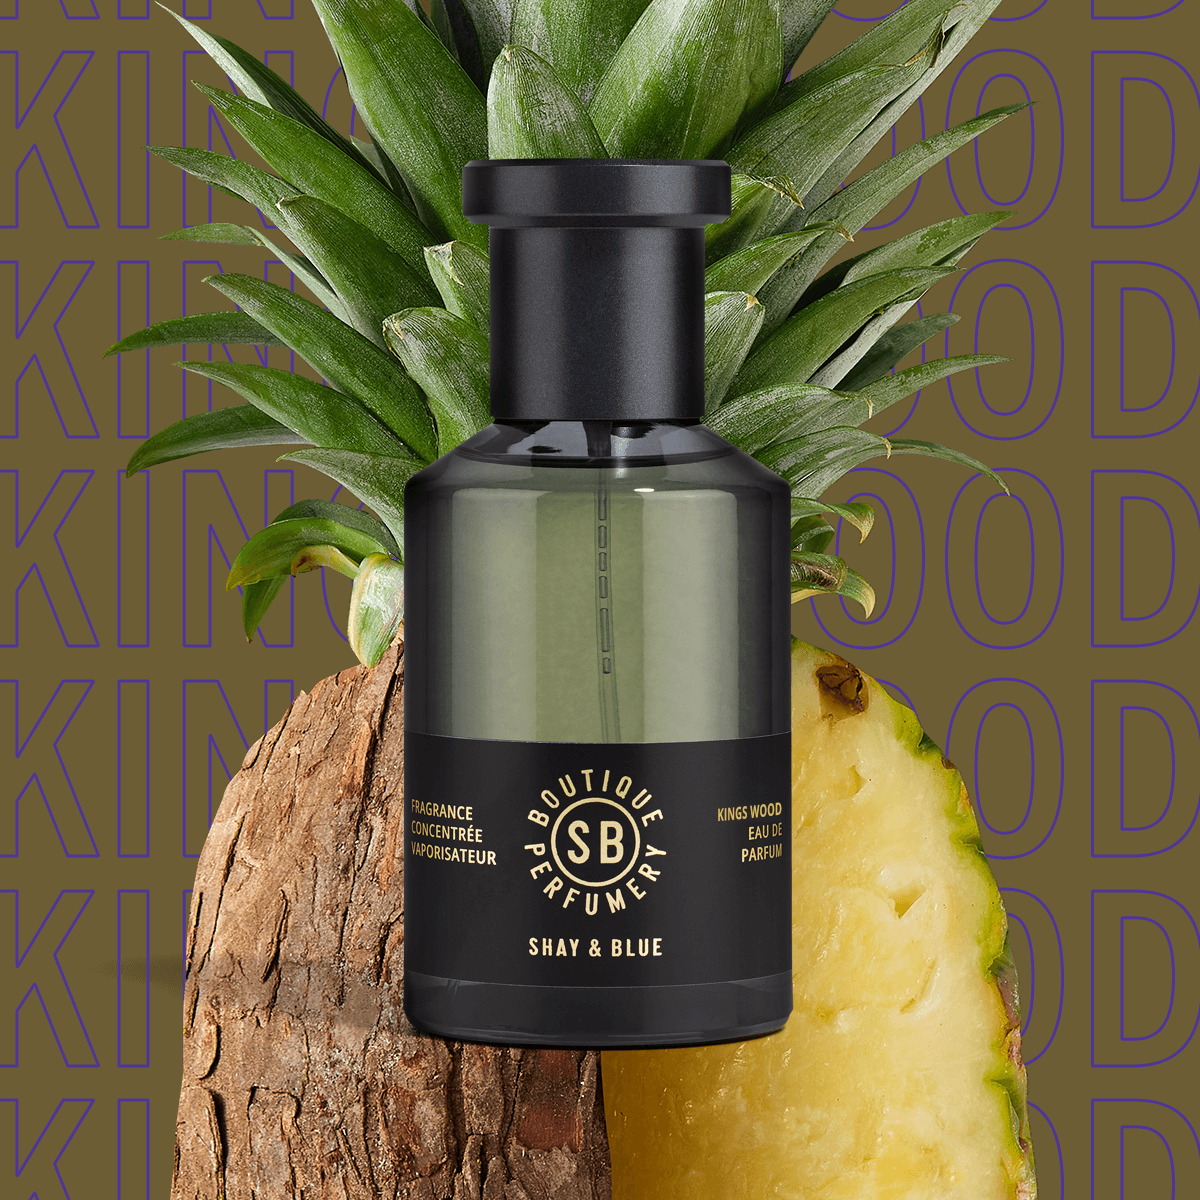 Kings Wood Fragrance Concentrate 100ml | Fresh pineapple with the natural aroma of fearn leaves. | Clean All Gender Fragrance | Shay & Blue